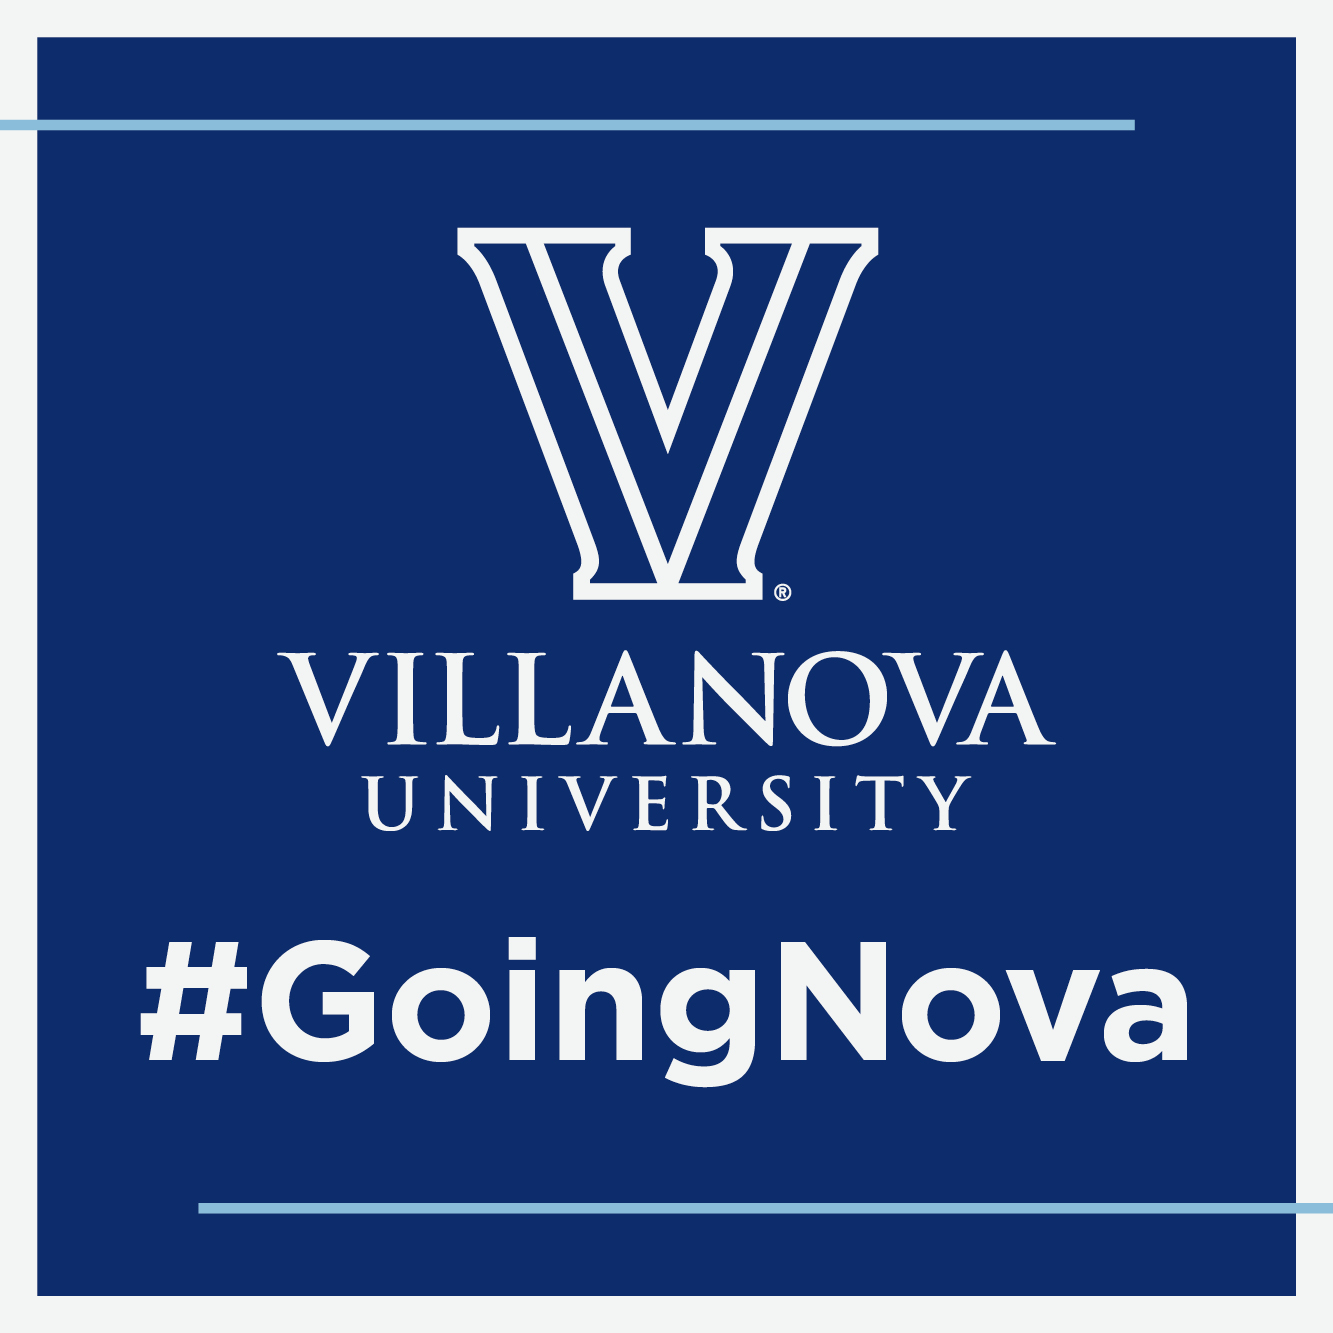 villanova personals He received additional advanced masters certificates in information security (villanova university) project management (villanova university)  bhm personals.